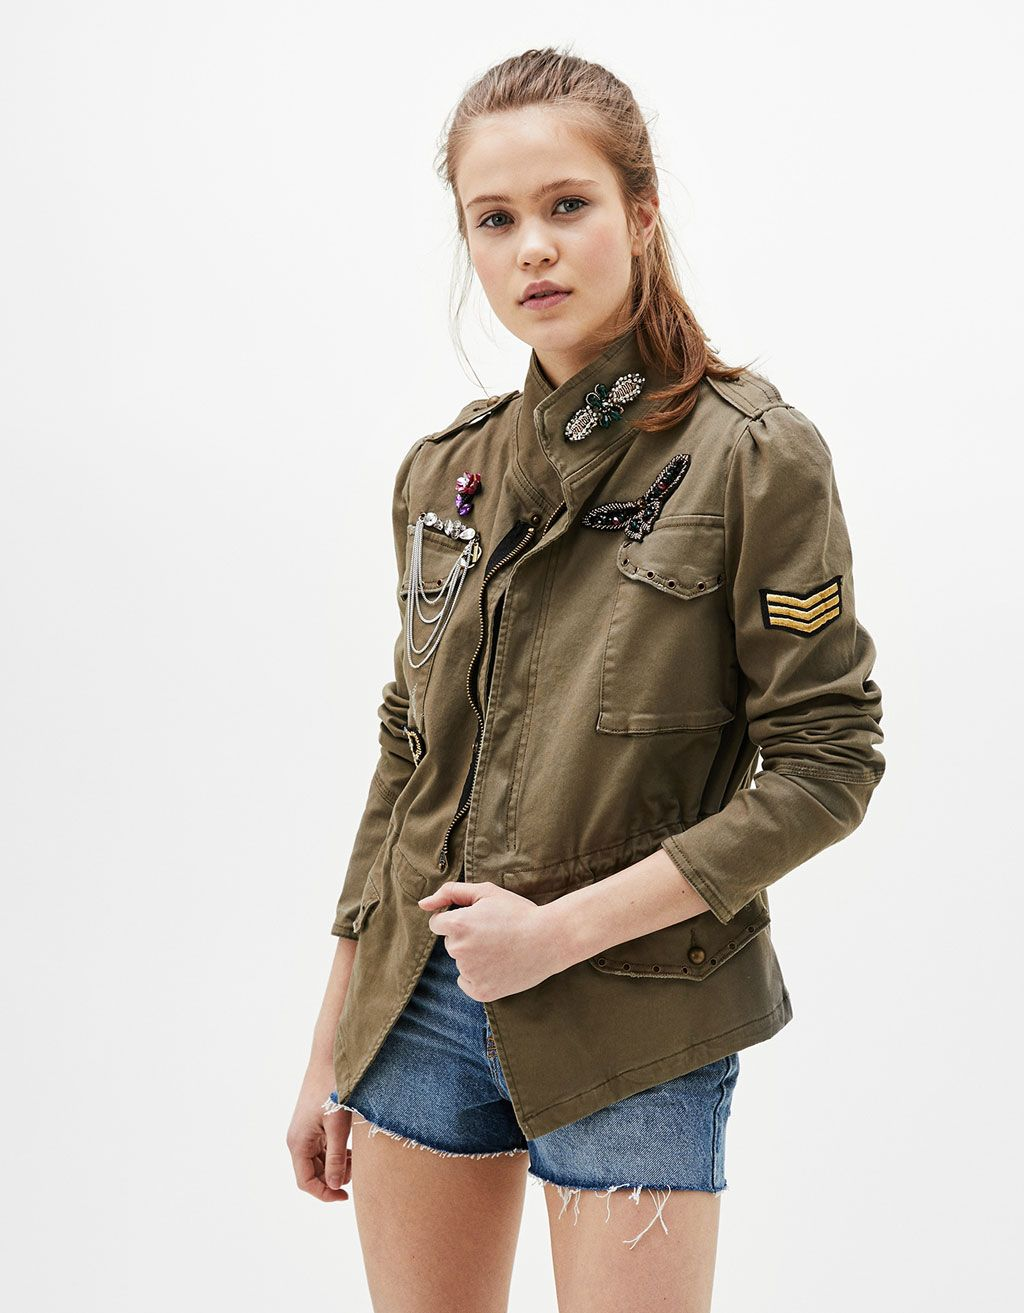 This military style jacket is everywhere this spring — and